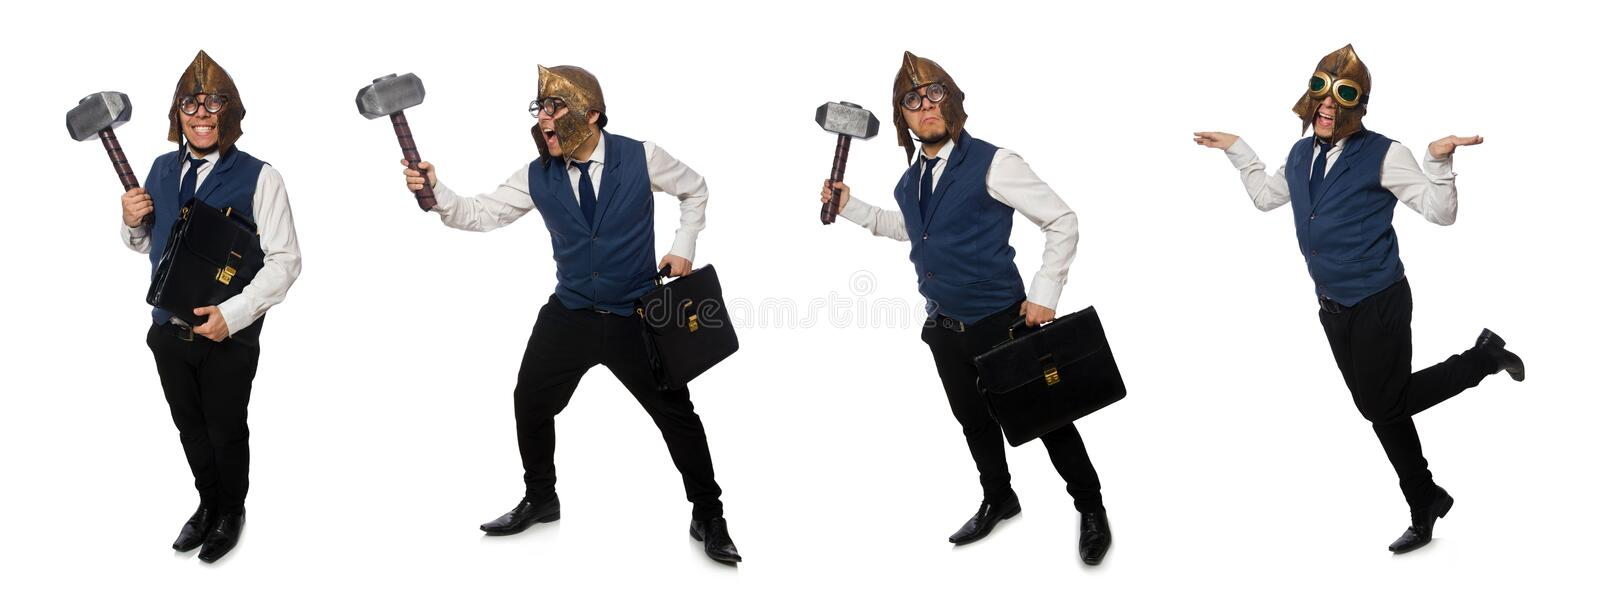 The funny man wearing pilot helmet and goggles stock photography